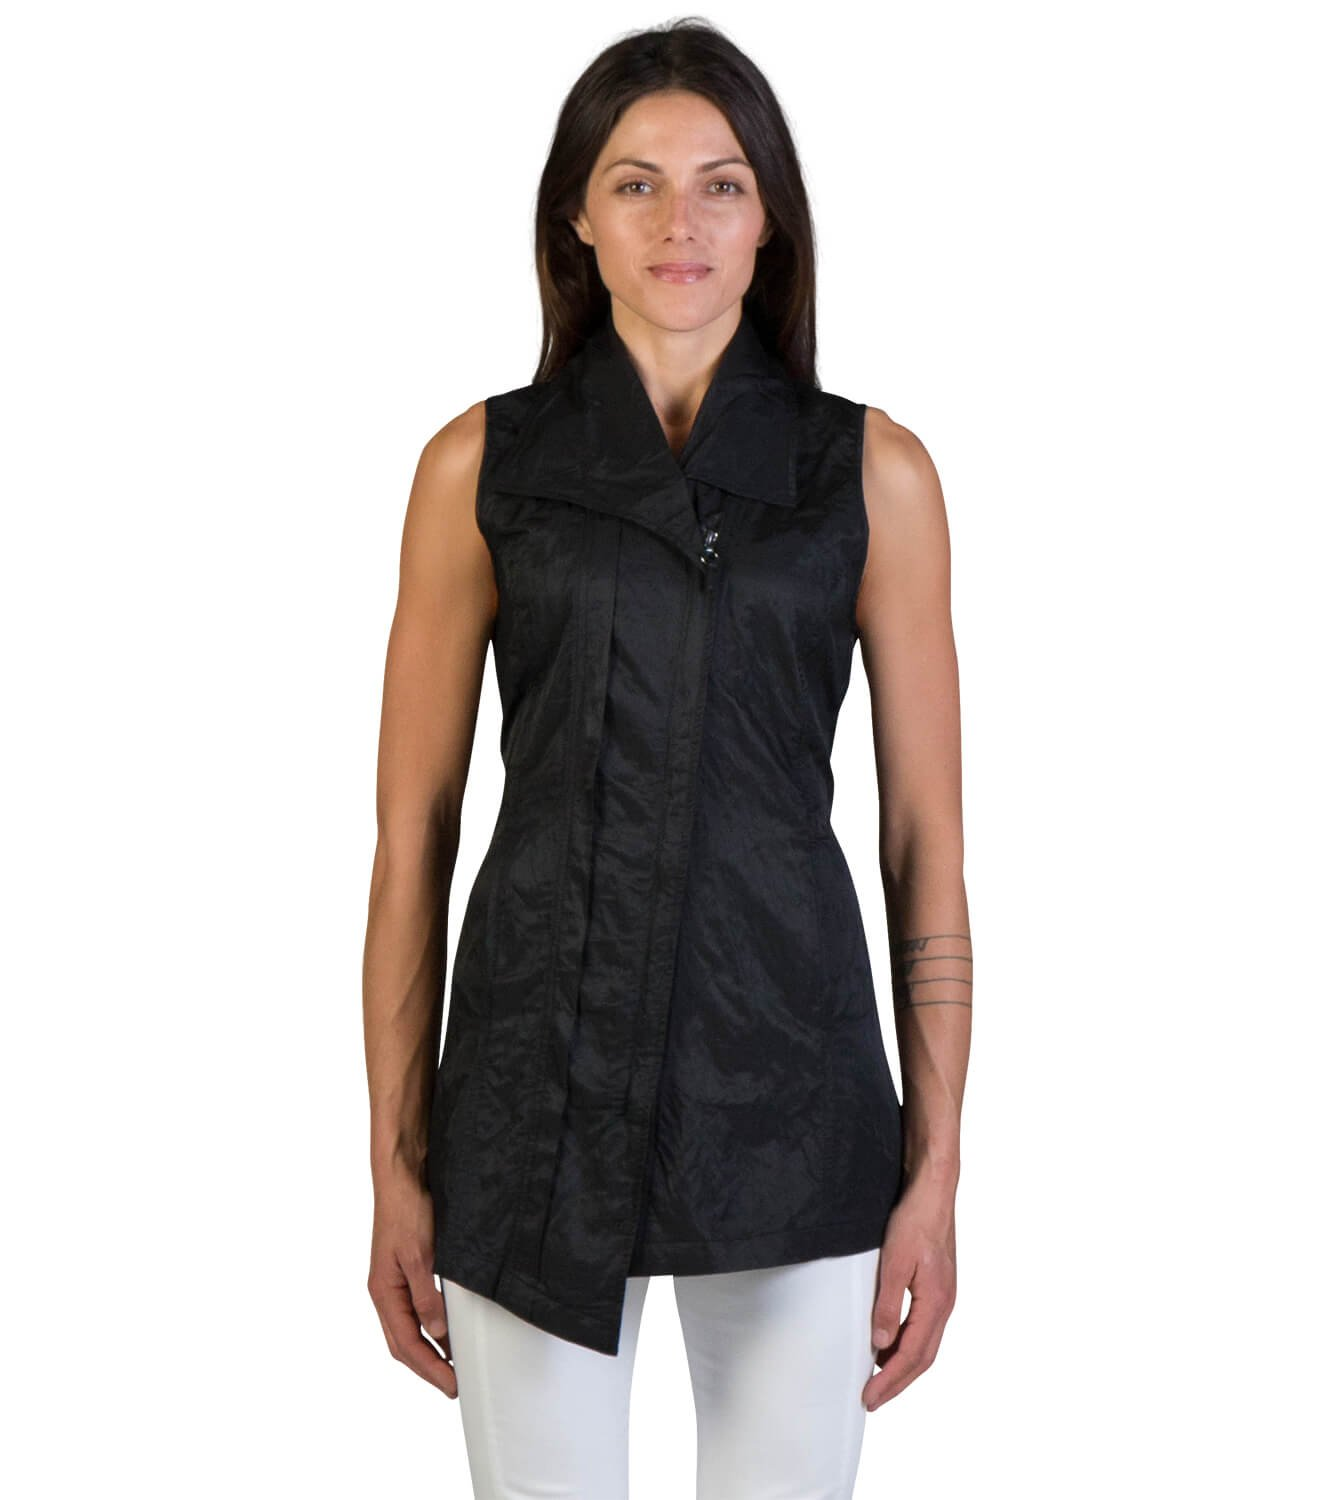 Go To Style Vest - Black - M by Stella Carakasi